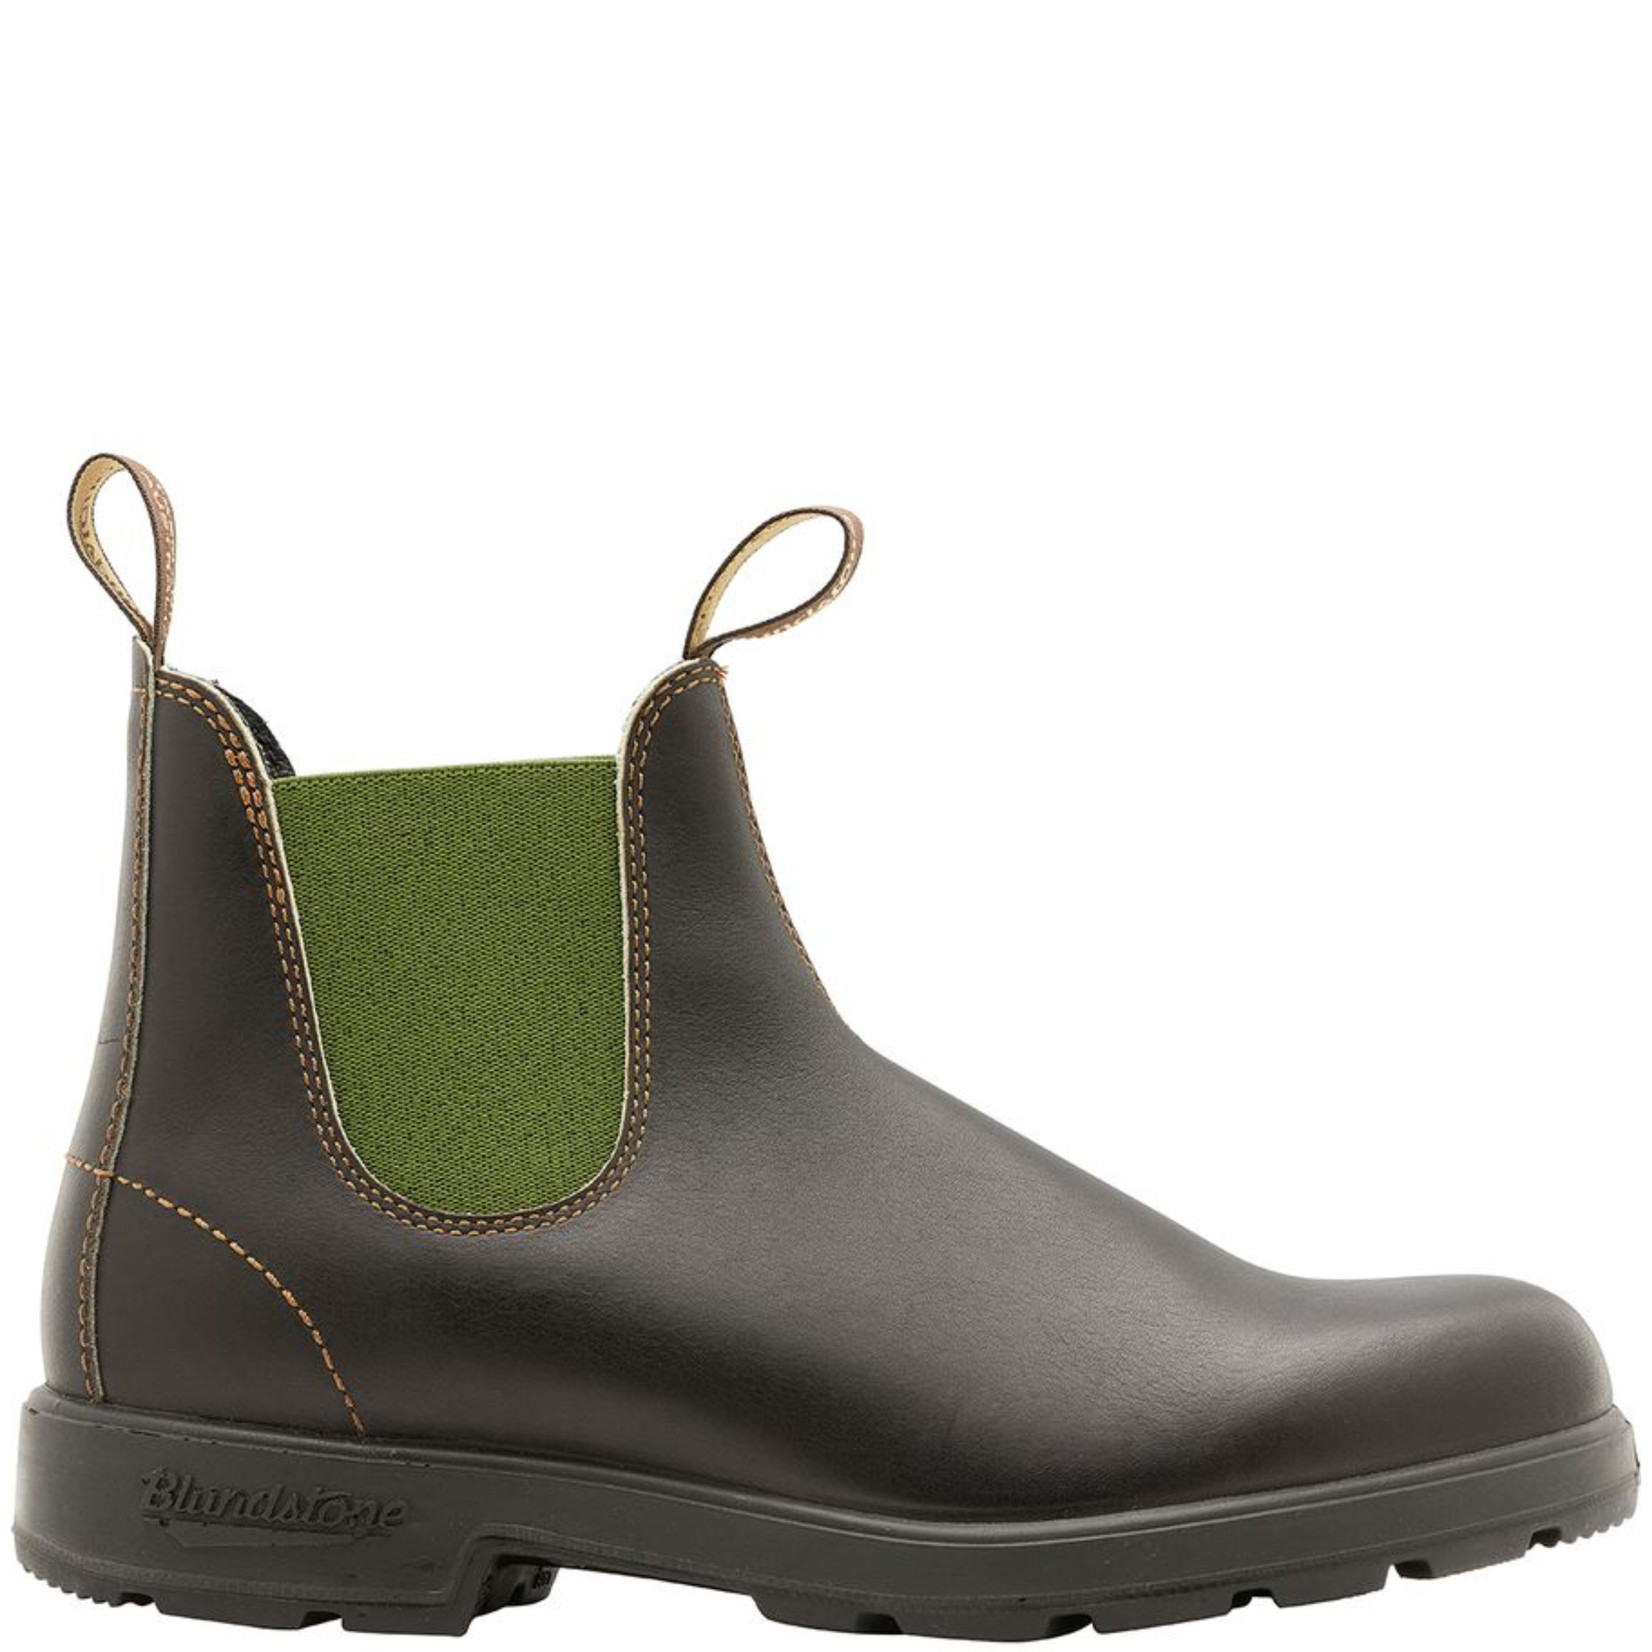 Blundstone 519 Stout Brown and Olive